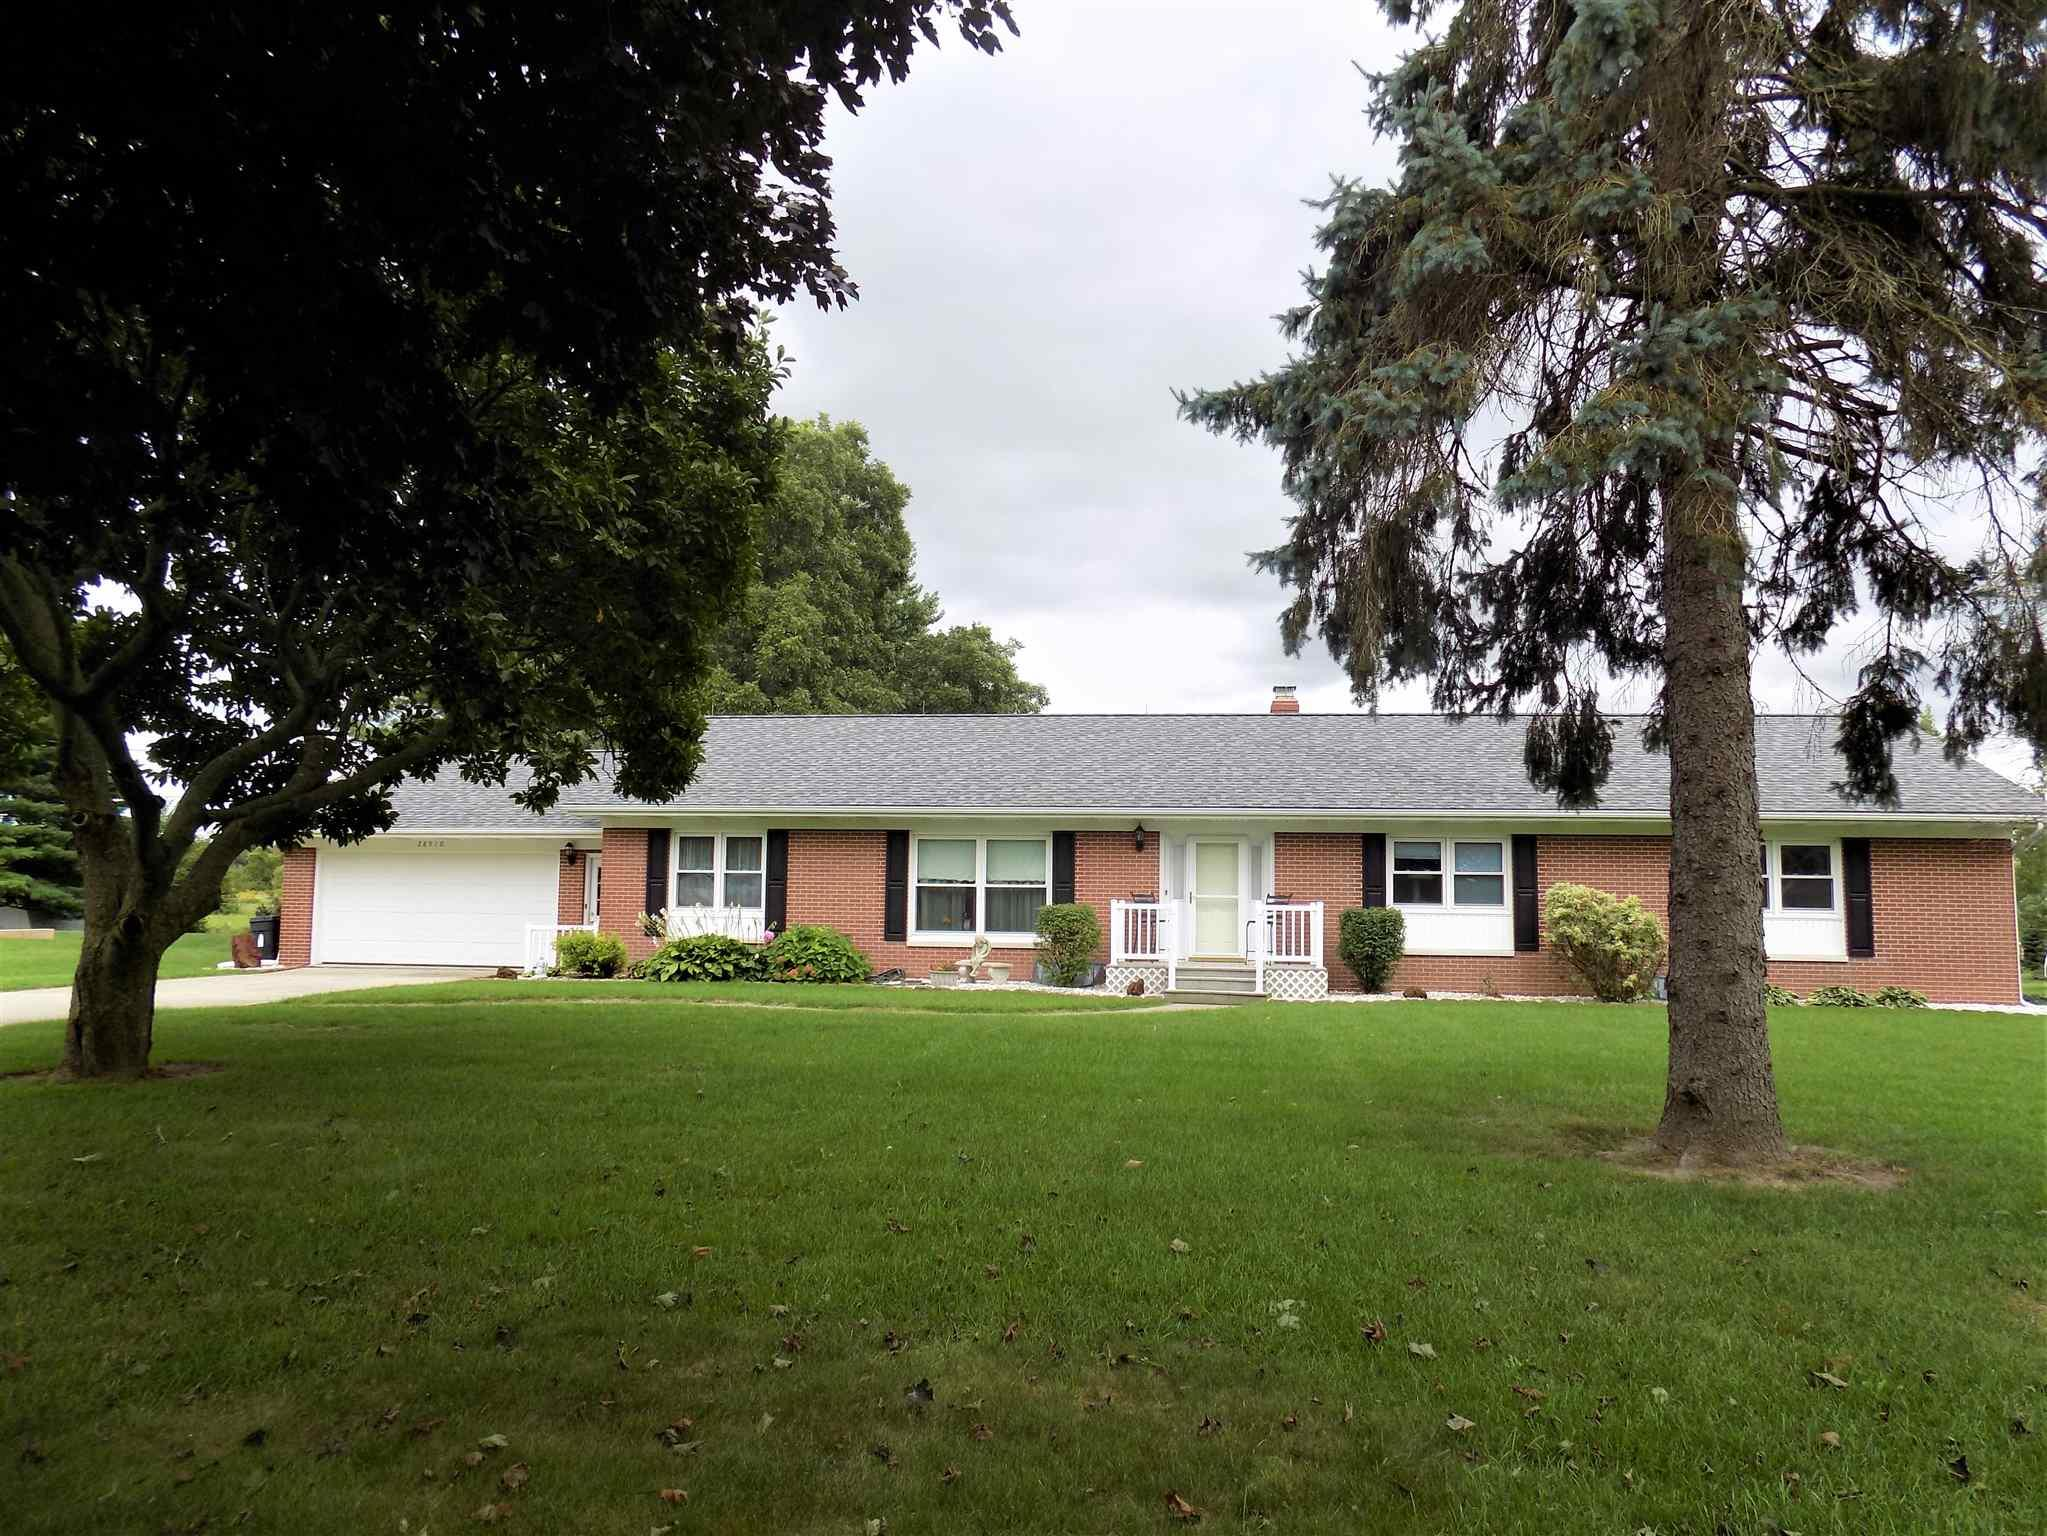 28910 County Road 38 Wakarusa, IN 46573